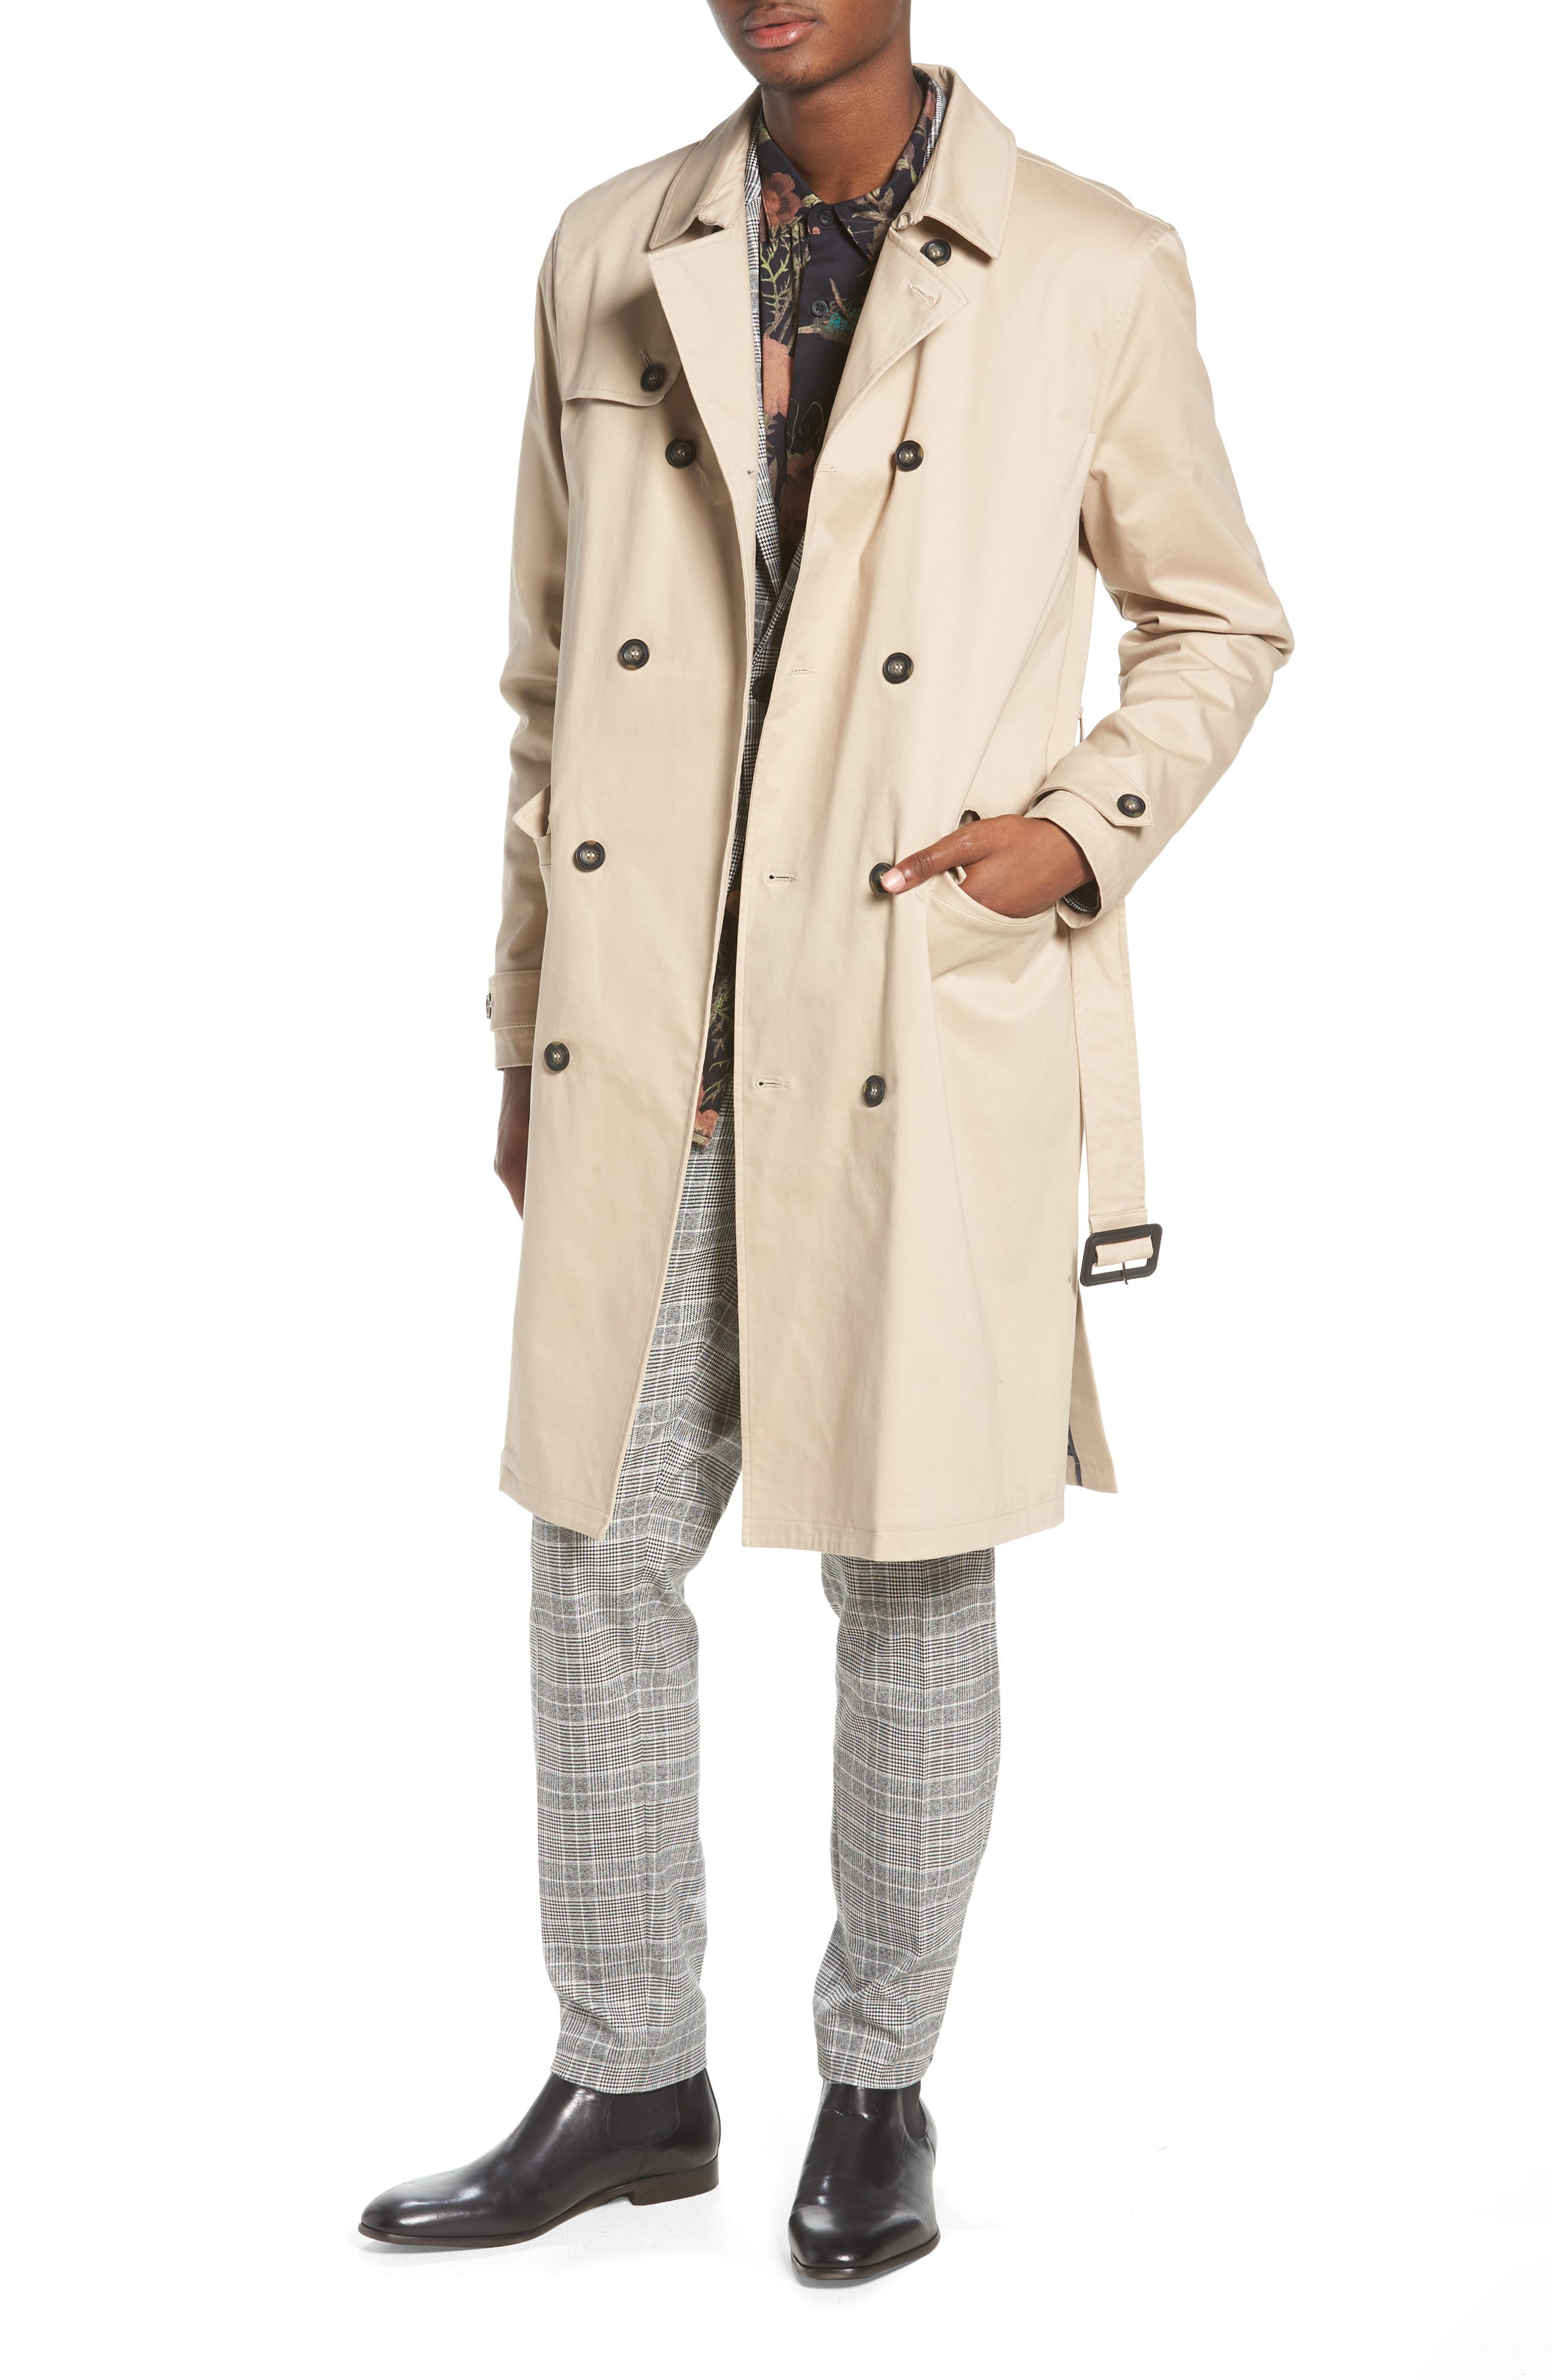 Men's Vintage Christmas Gift Ideas Mens Topman Peached Trench Coat Size X-Small - Beige $64.99 AT vintagedancer.com